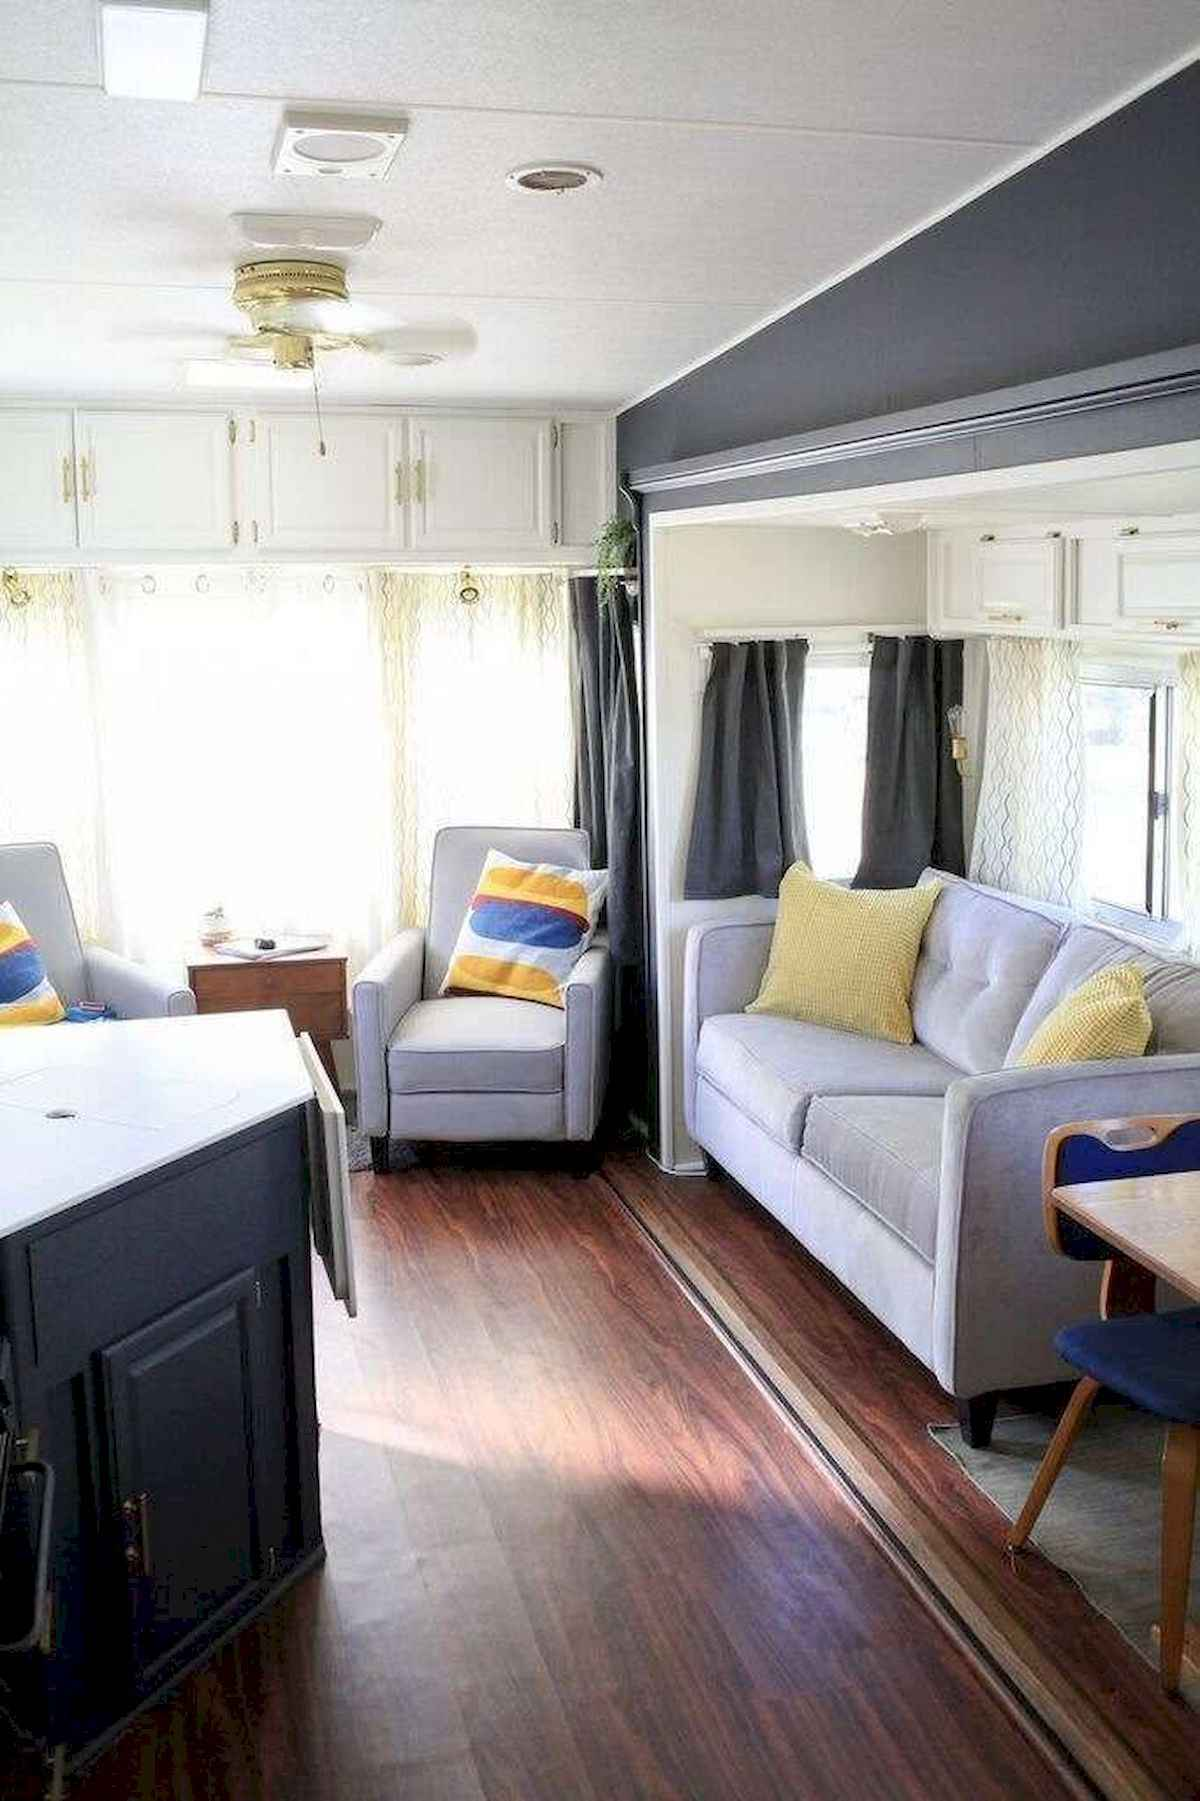 70 Stunning RV Living Camper Room Ideas Decorations Make Your Summer Awesome (34)